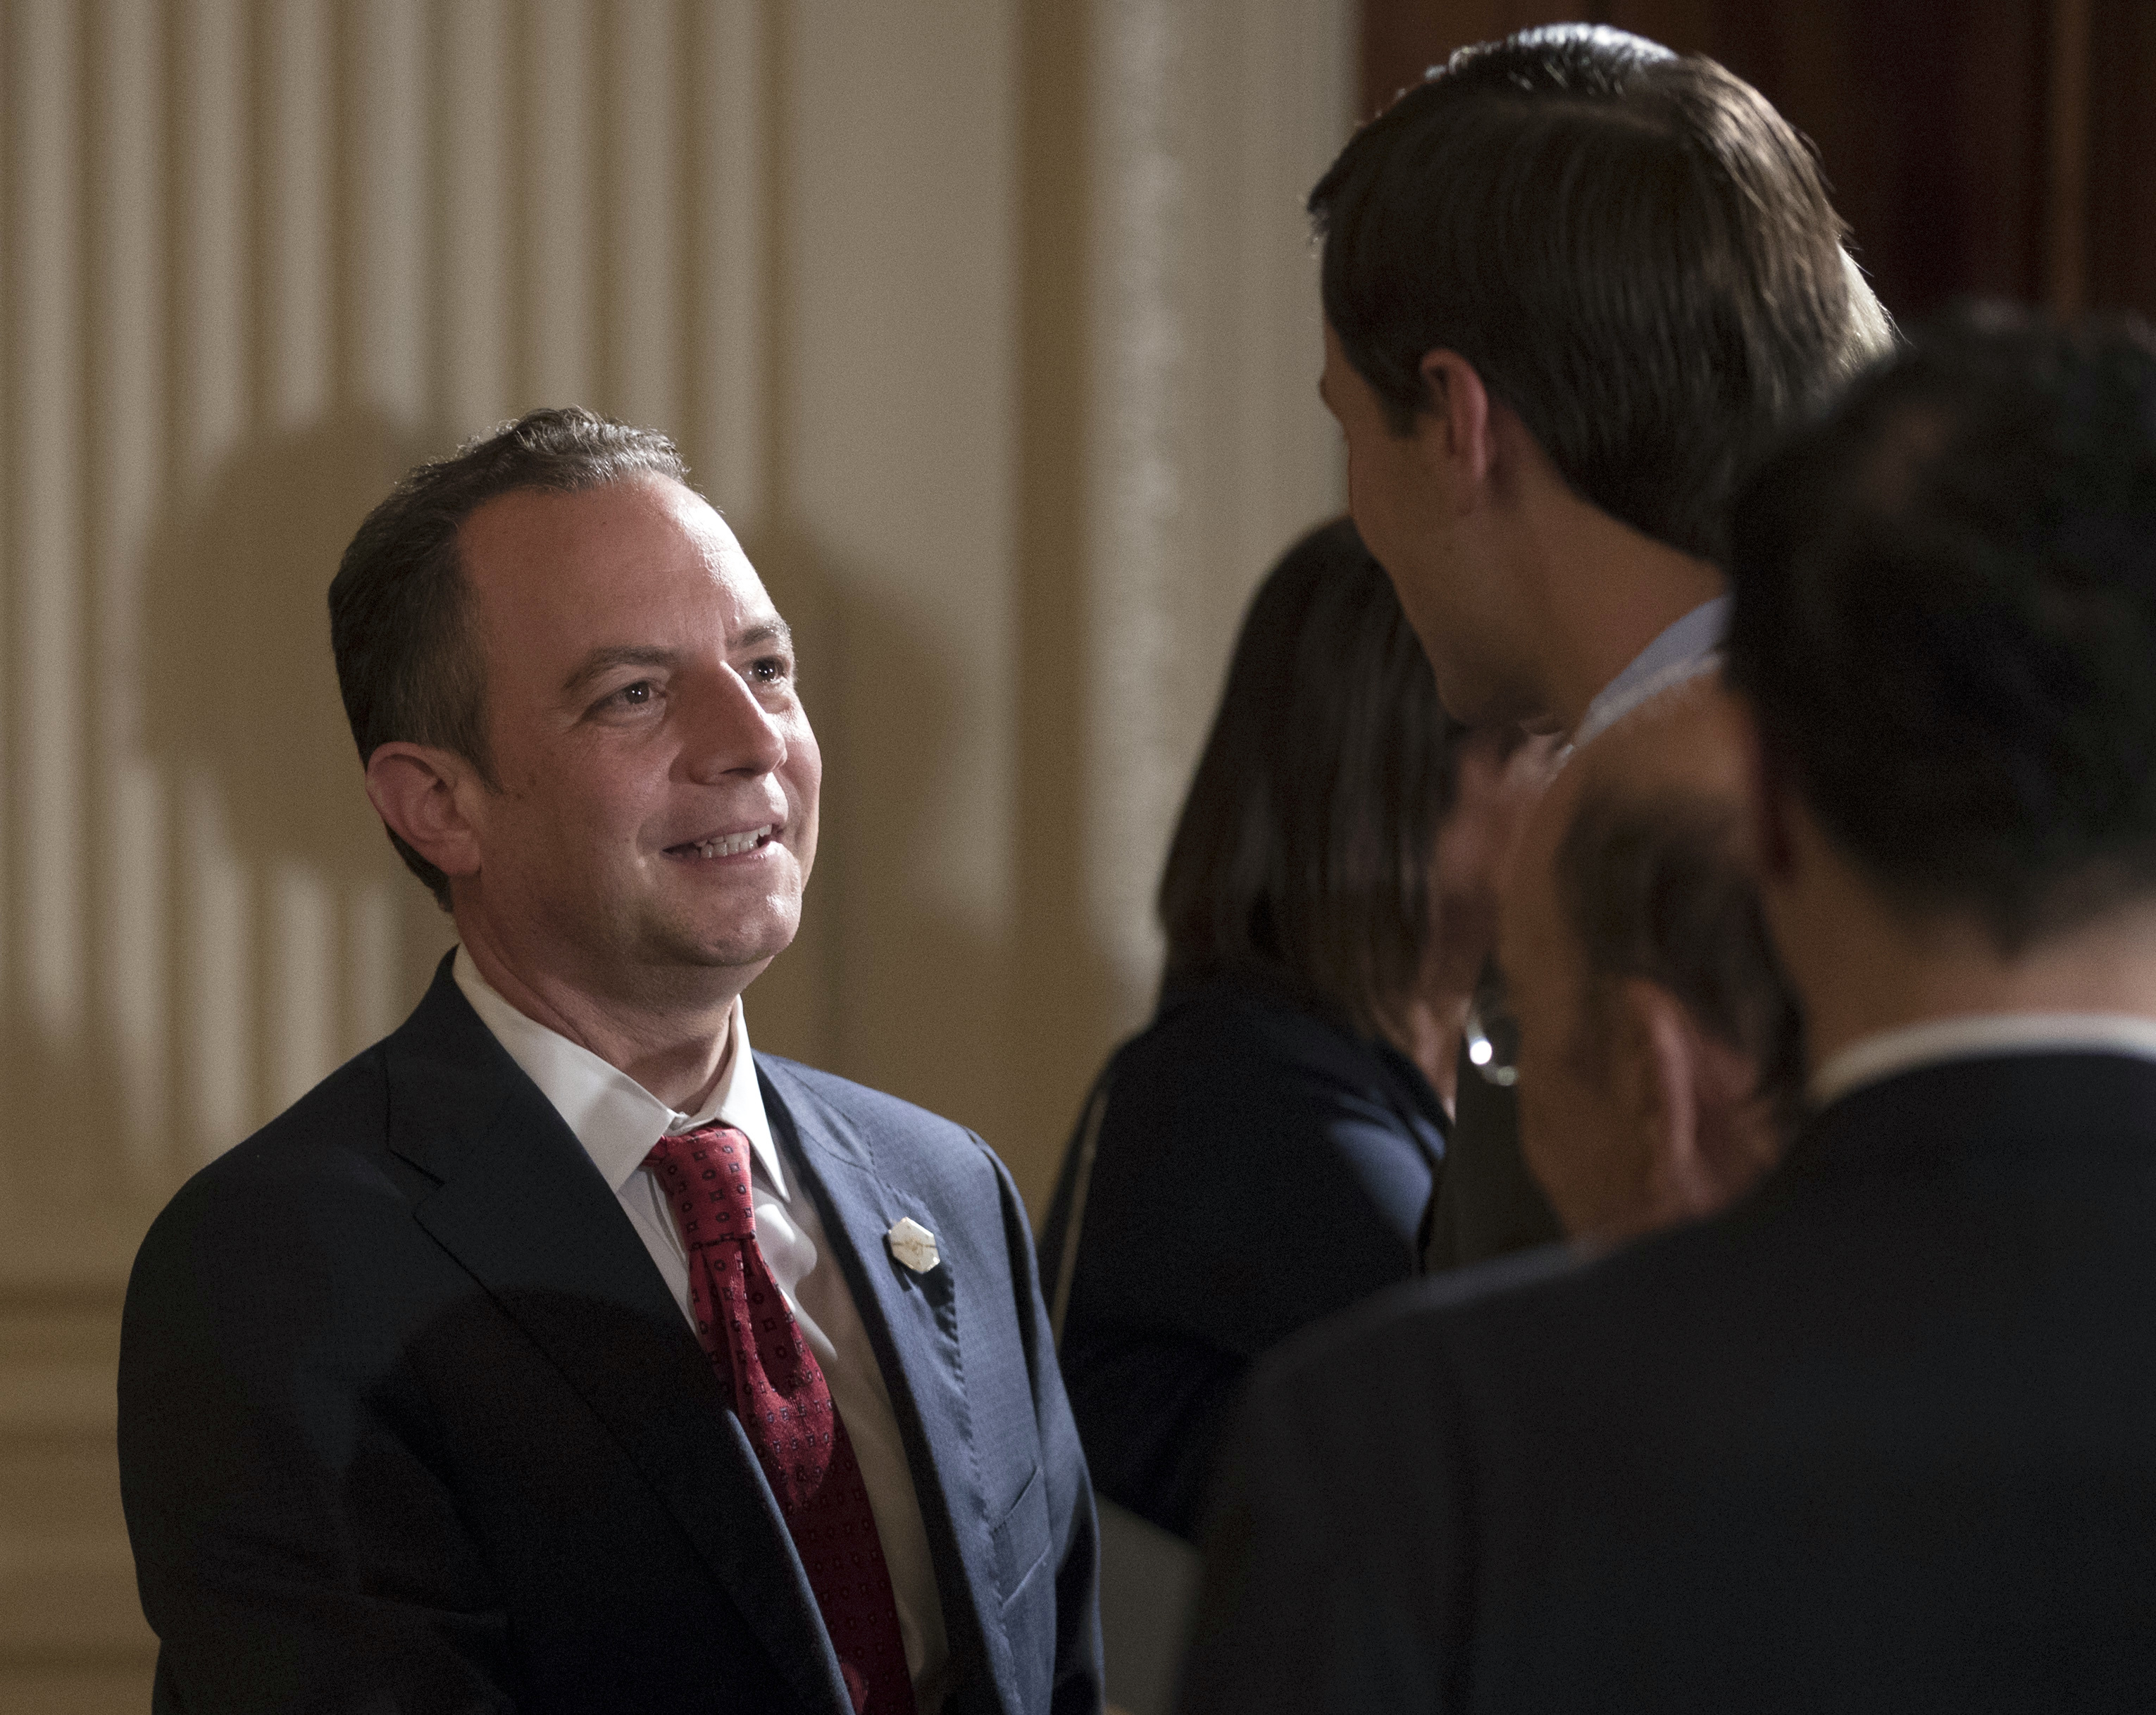 "FILE - In this July 26, 2017 file photo, White House Chief of Staff Reince Priebus talks with White House senior adviser Jared Kushner in the East Room of the White House in Washington. New White House communications director Anthony Scaramucci went after Priebus Thursday, July 27, 2017, as a suspected ""leaker"" within the West Wing in a pull-no-punches interview that laid bare the personality clashes and internal turmoil of Donald Trump's presidency. (AP Photo/Carolyn Kaster, File)"